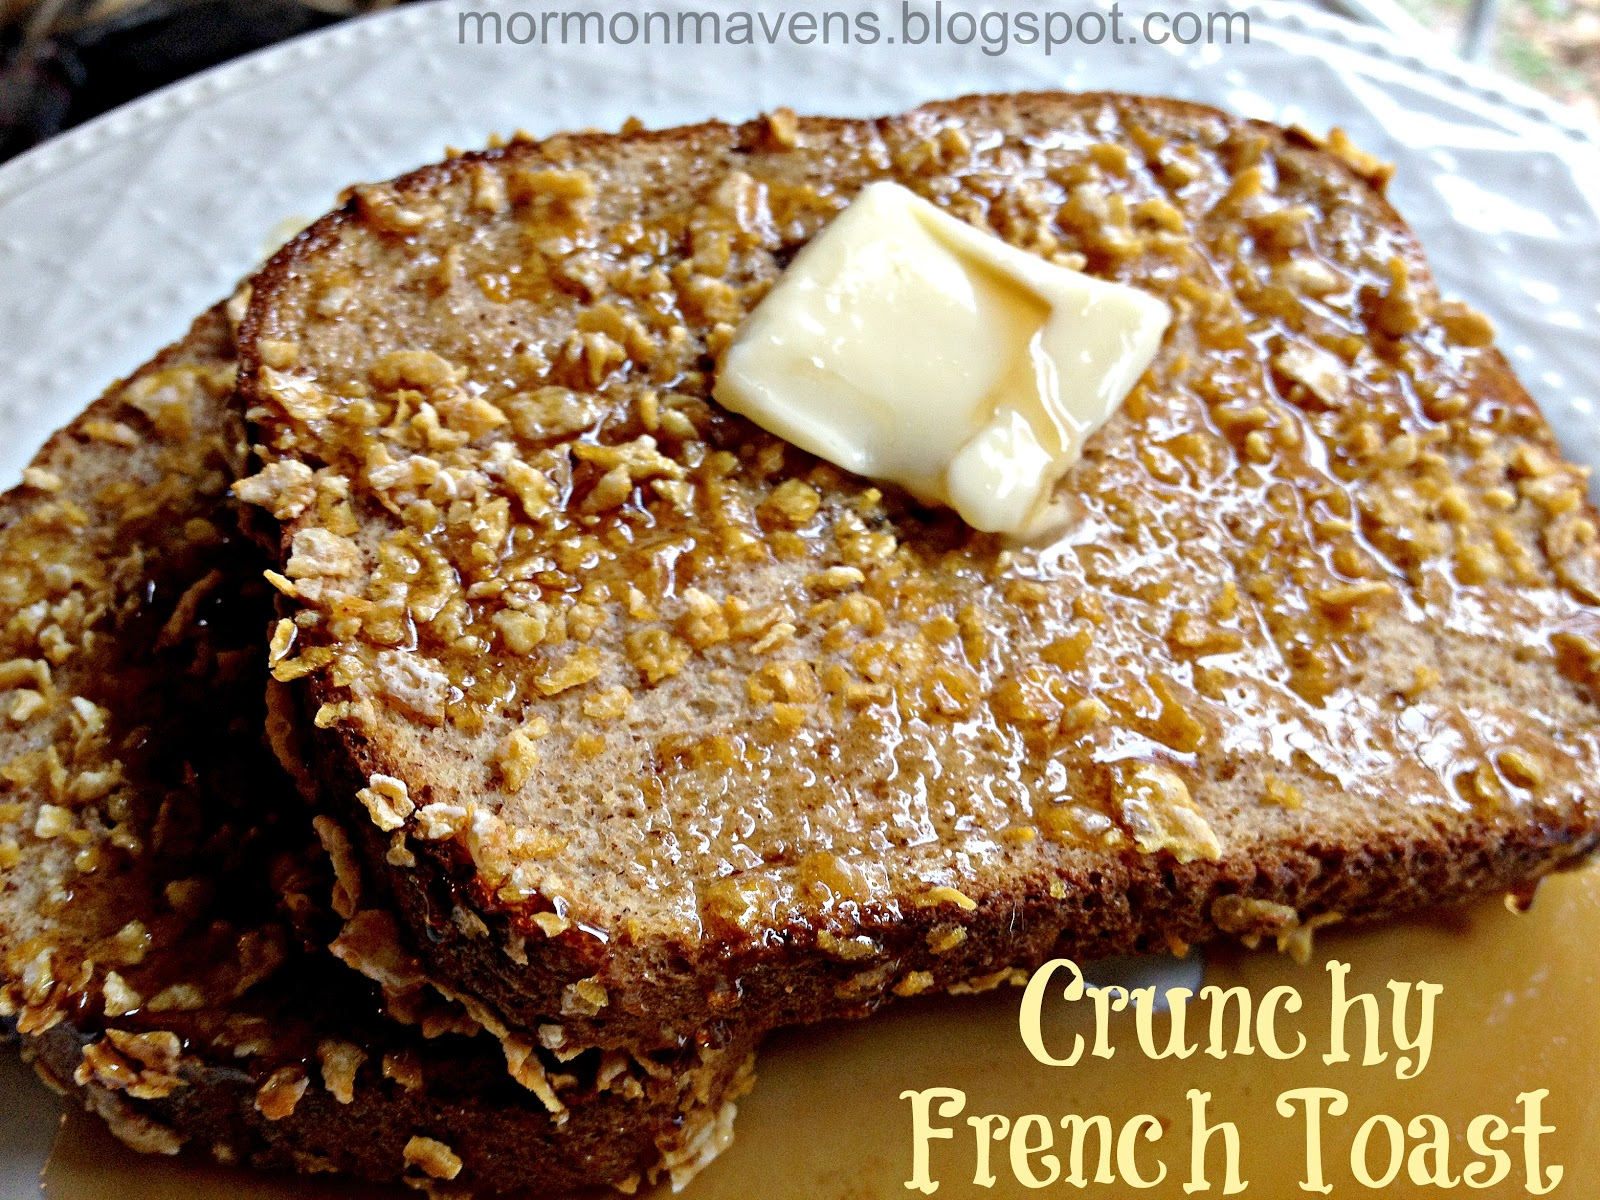 Mormon Mavens in the Kitchen: Crunchy French Toast